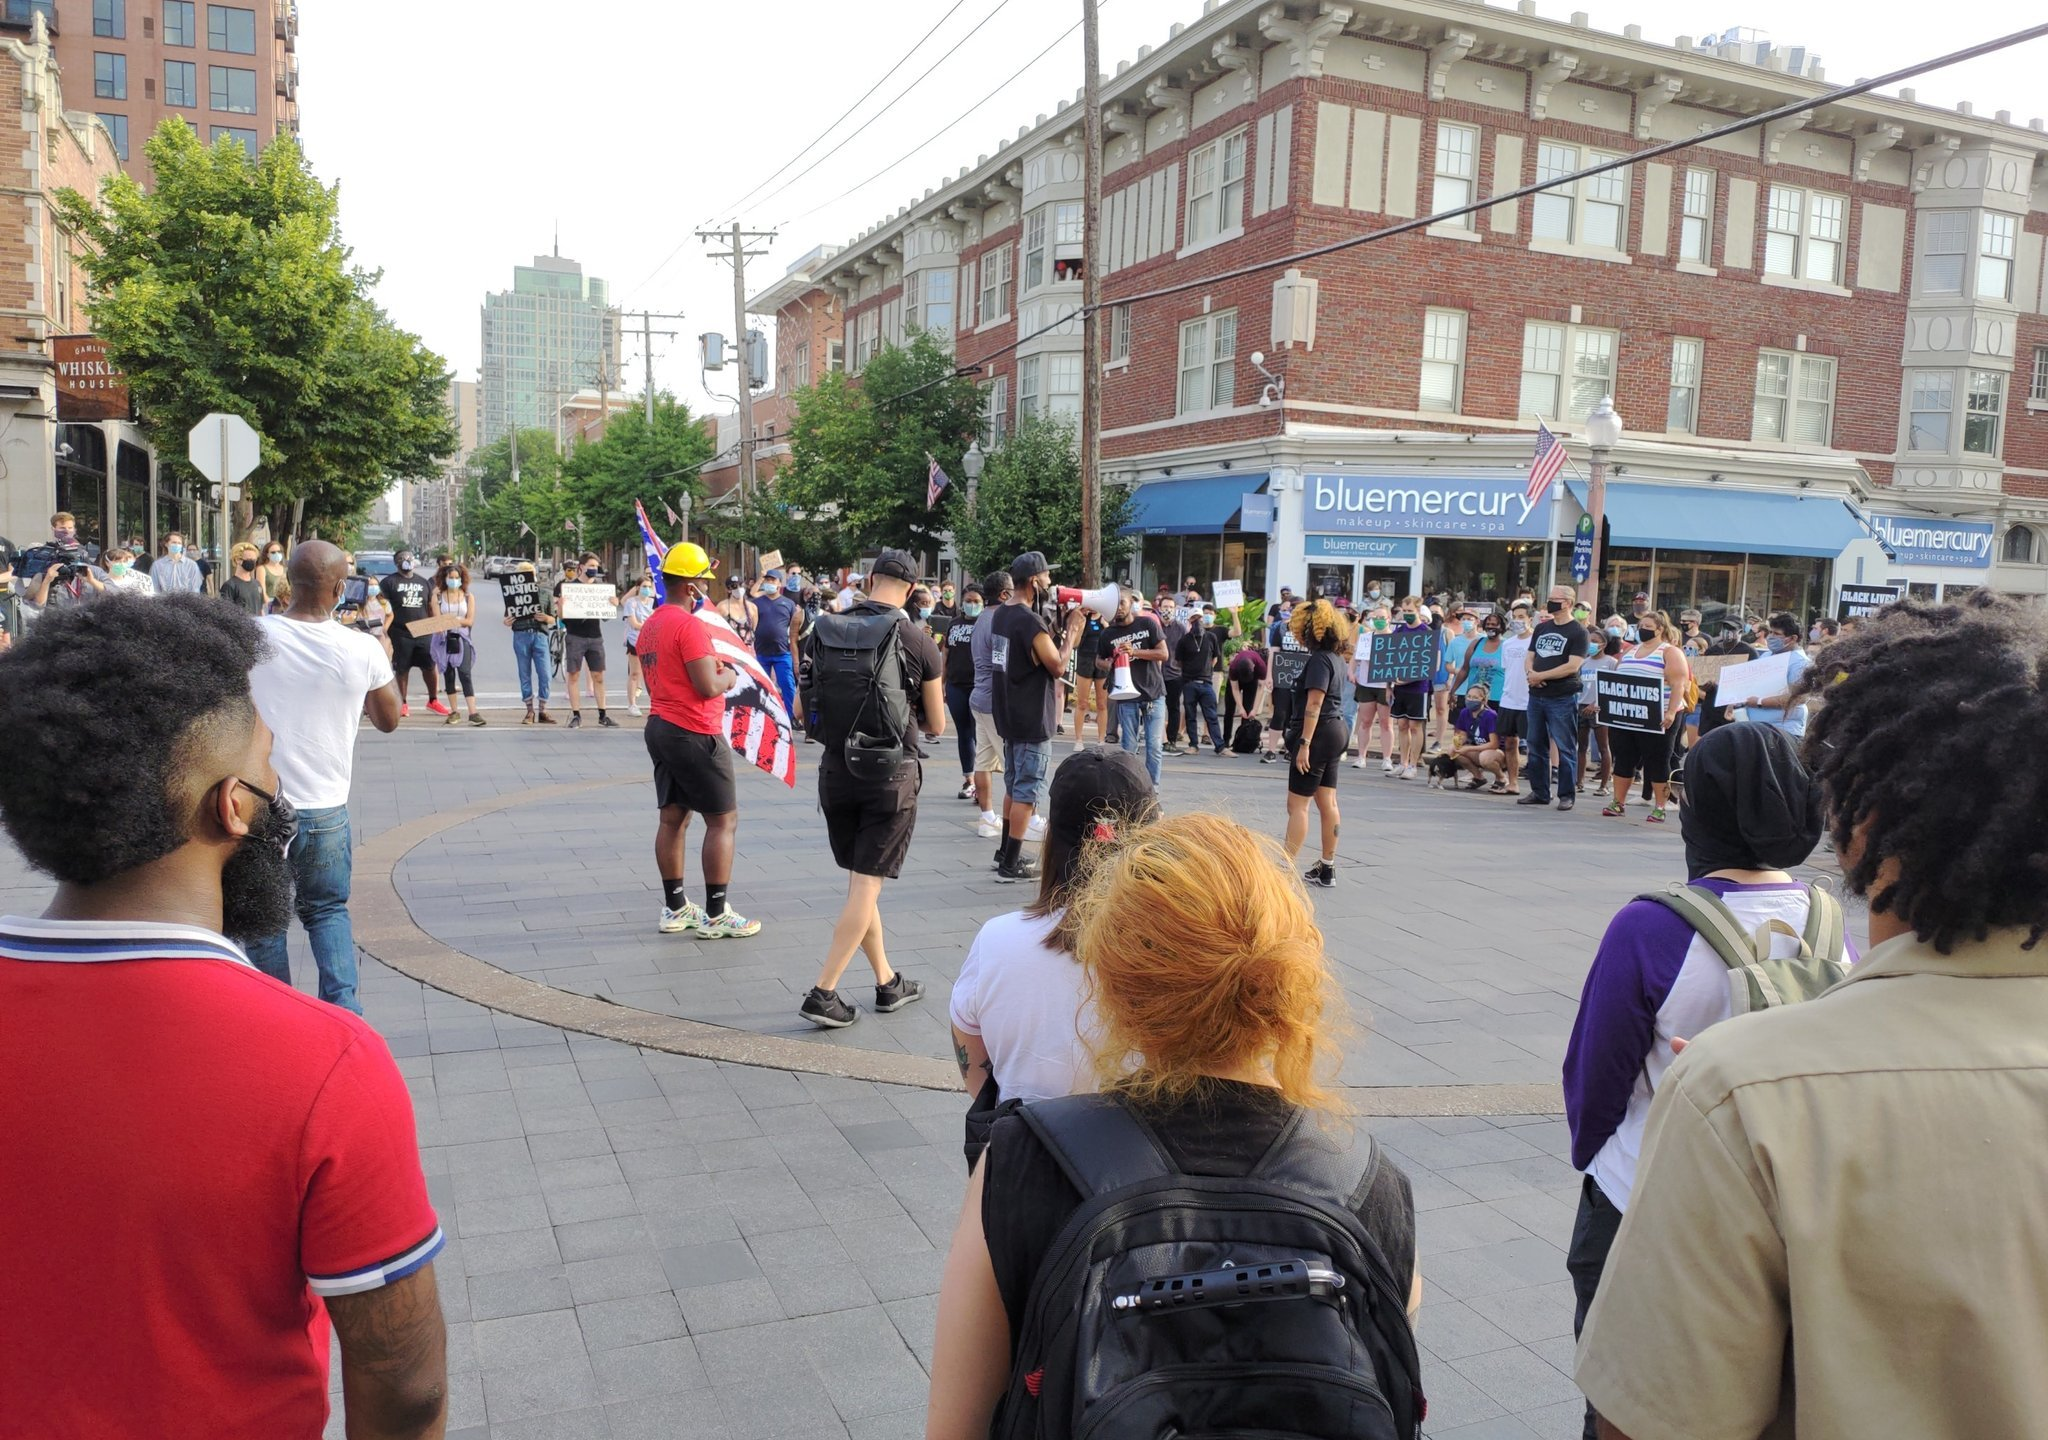 In response to St. Louis Mayor Lyda Krewson reading the names and addresses of people protesting the city's policing budget, Expect US is hosting a